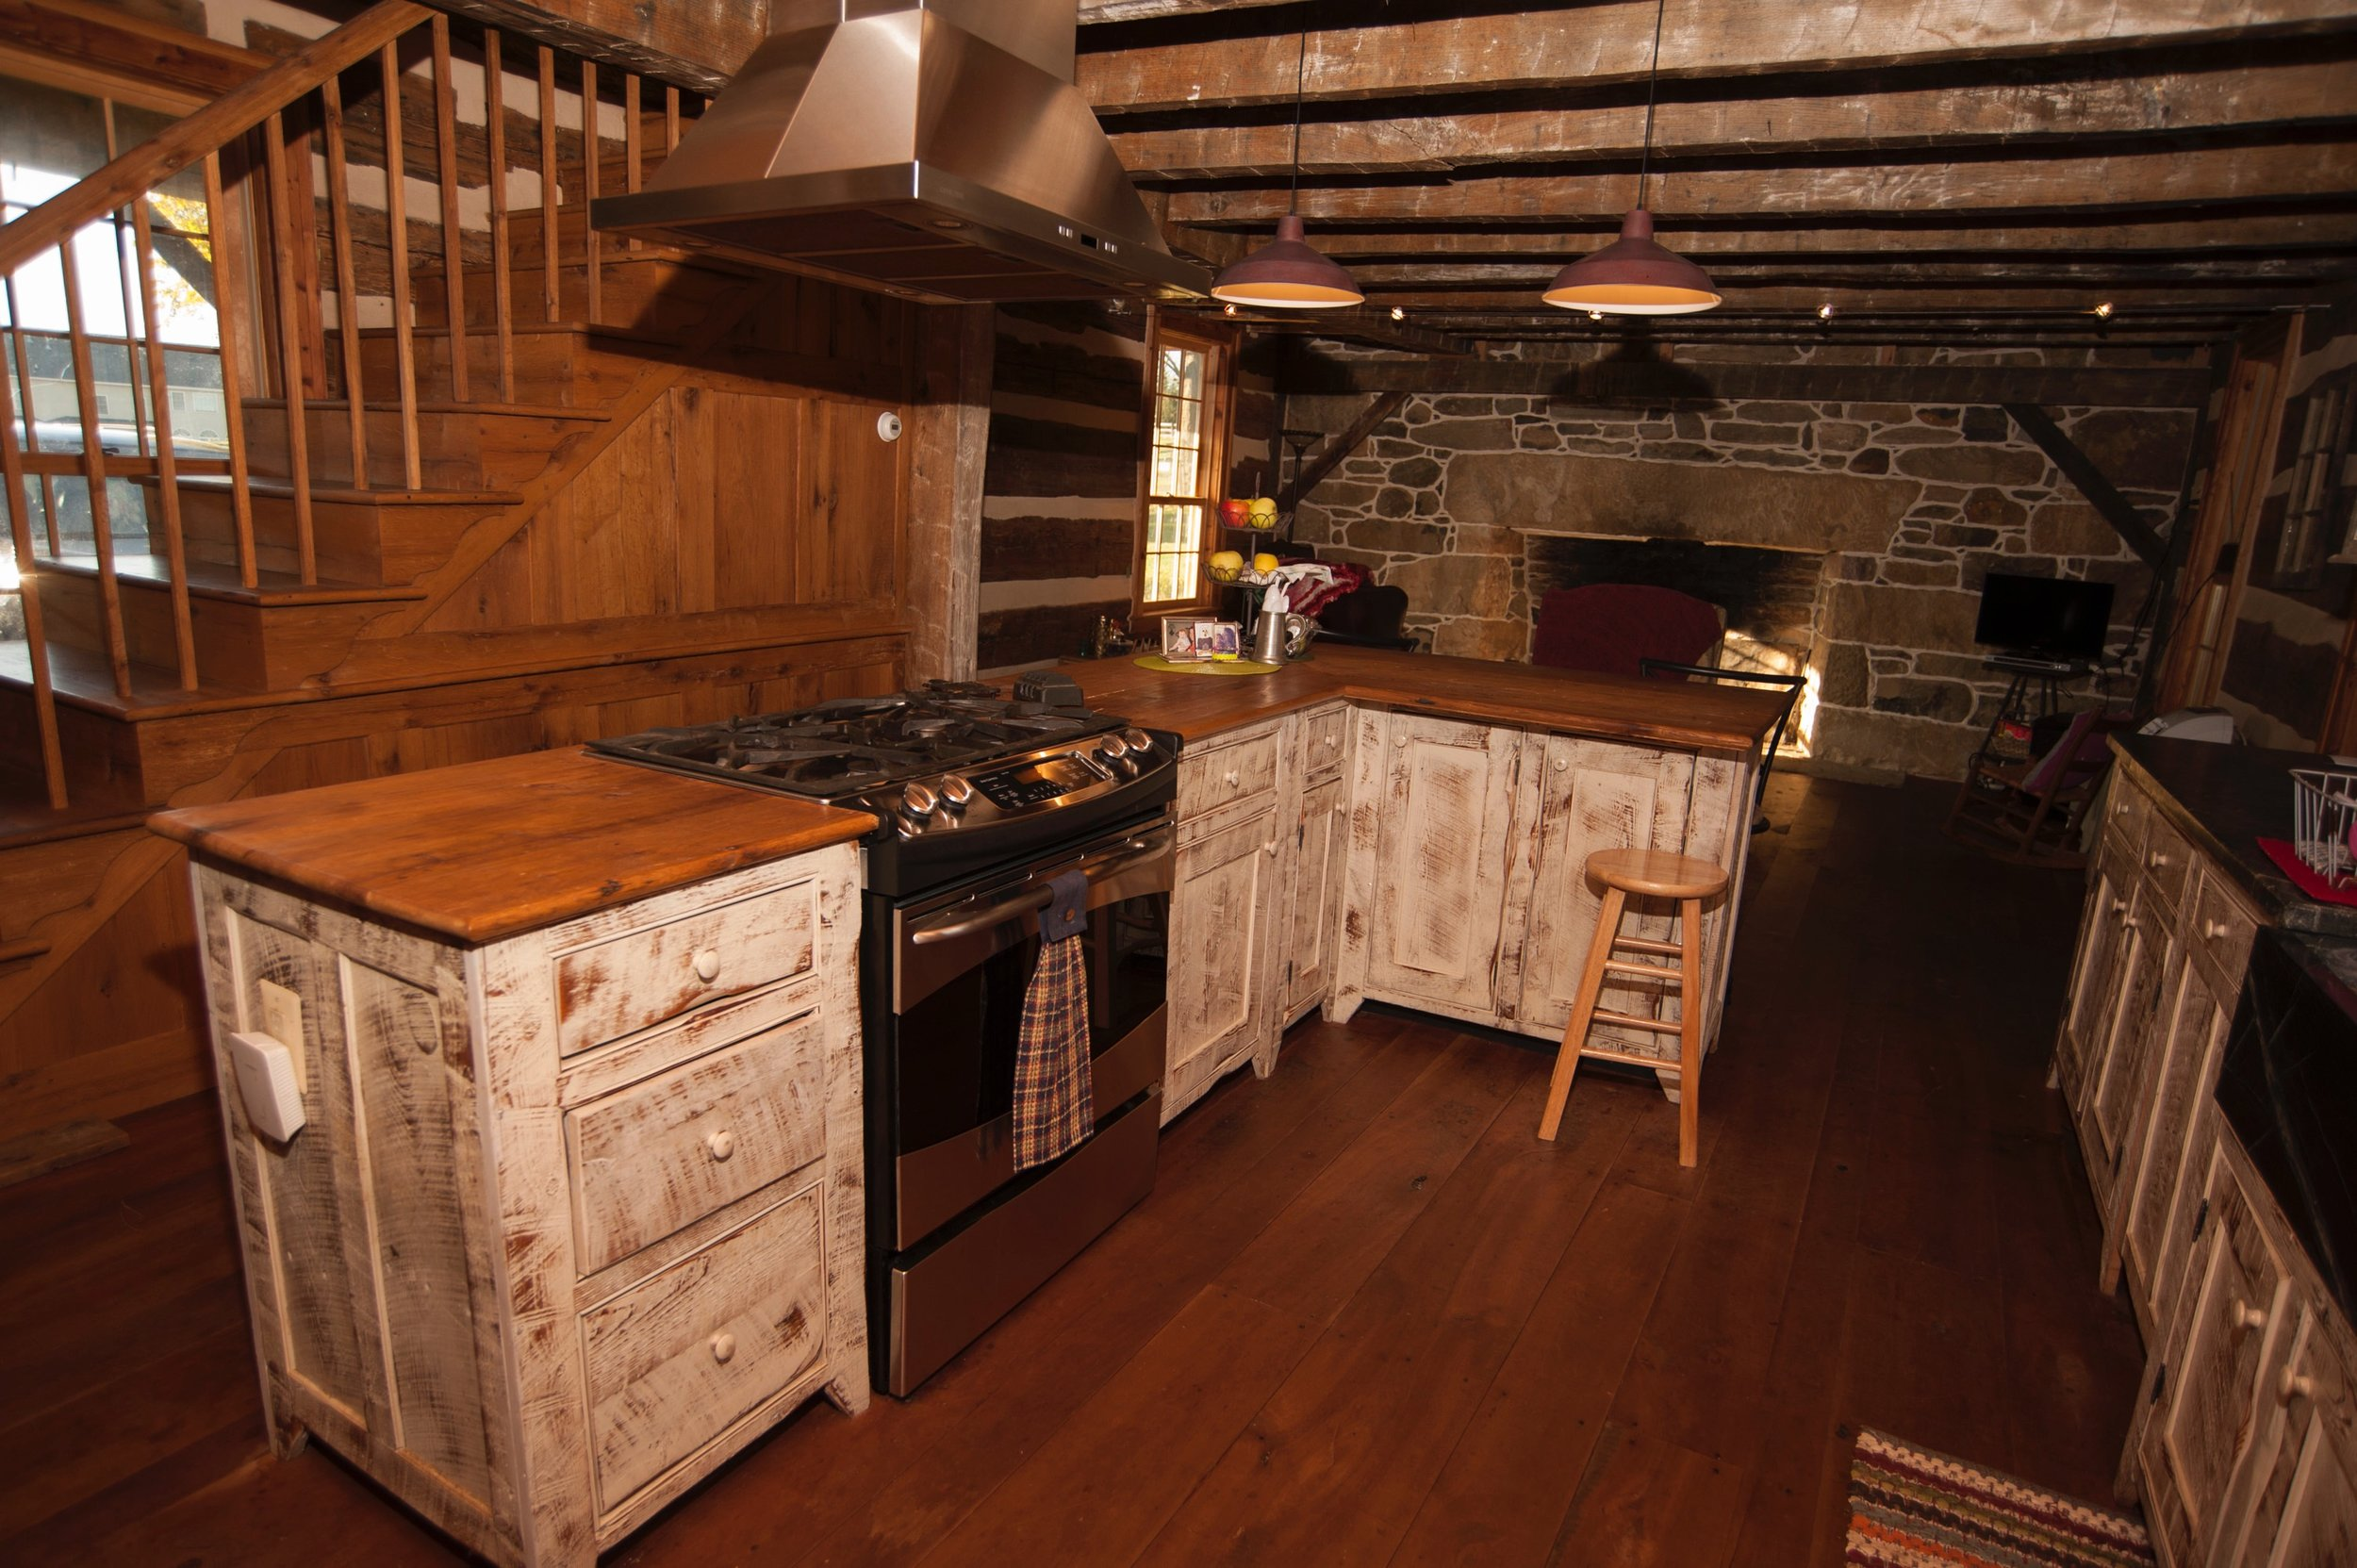 The log house kitchen features cabinetry designed and built by Allen Cochran.